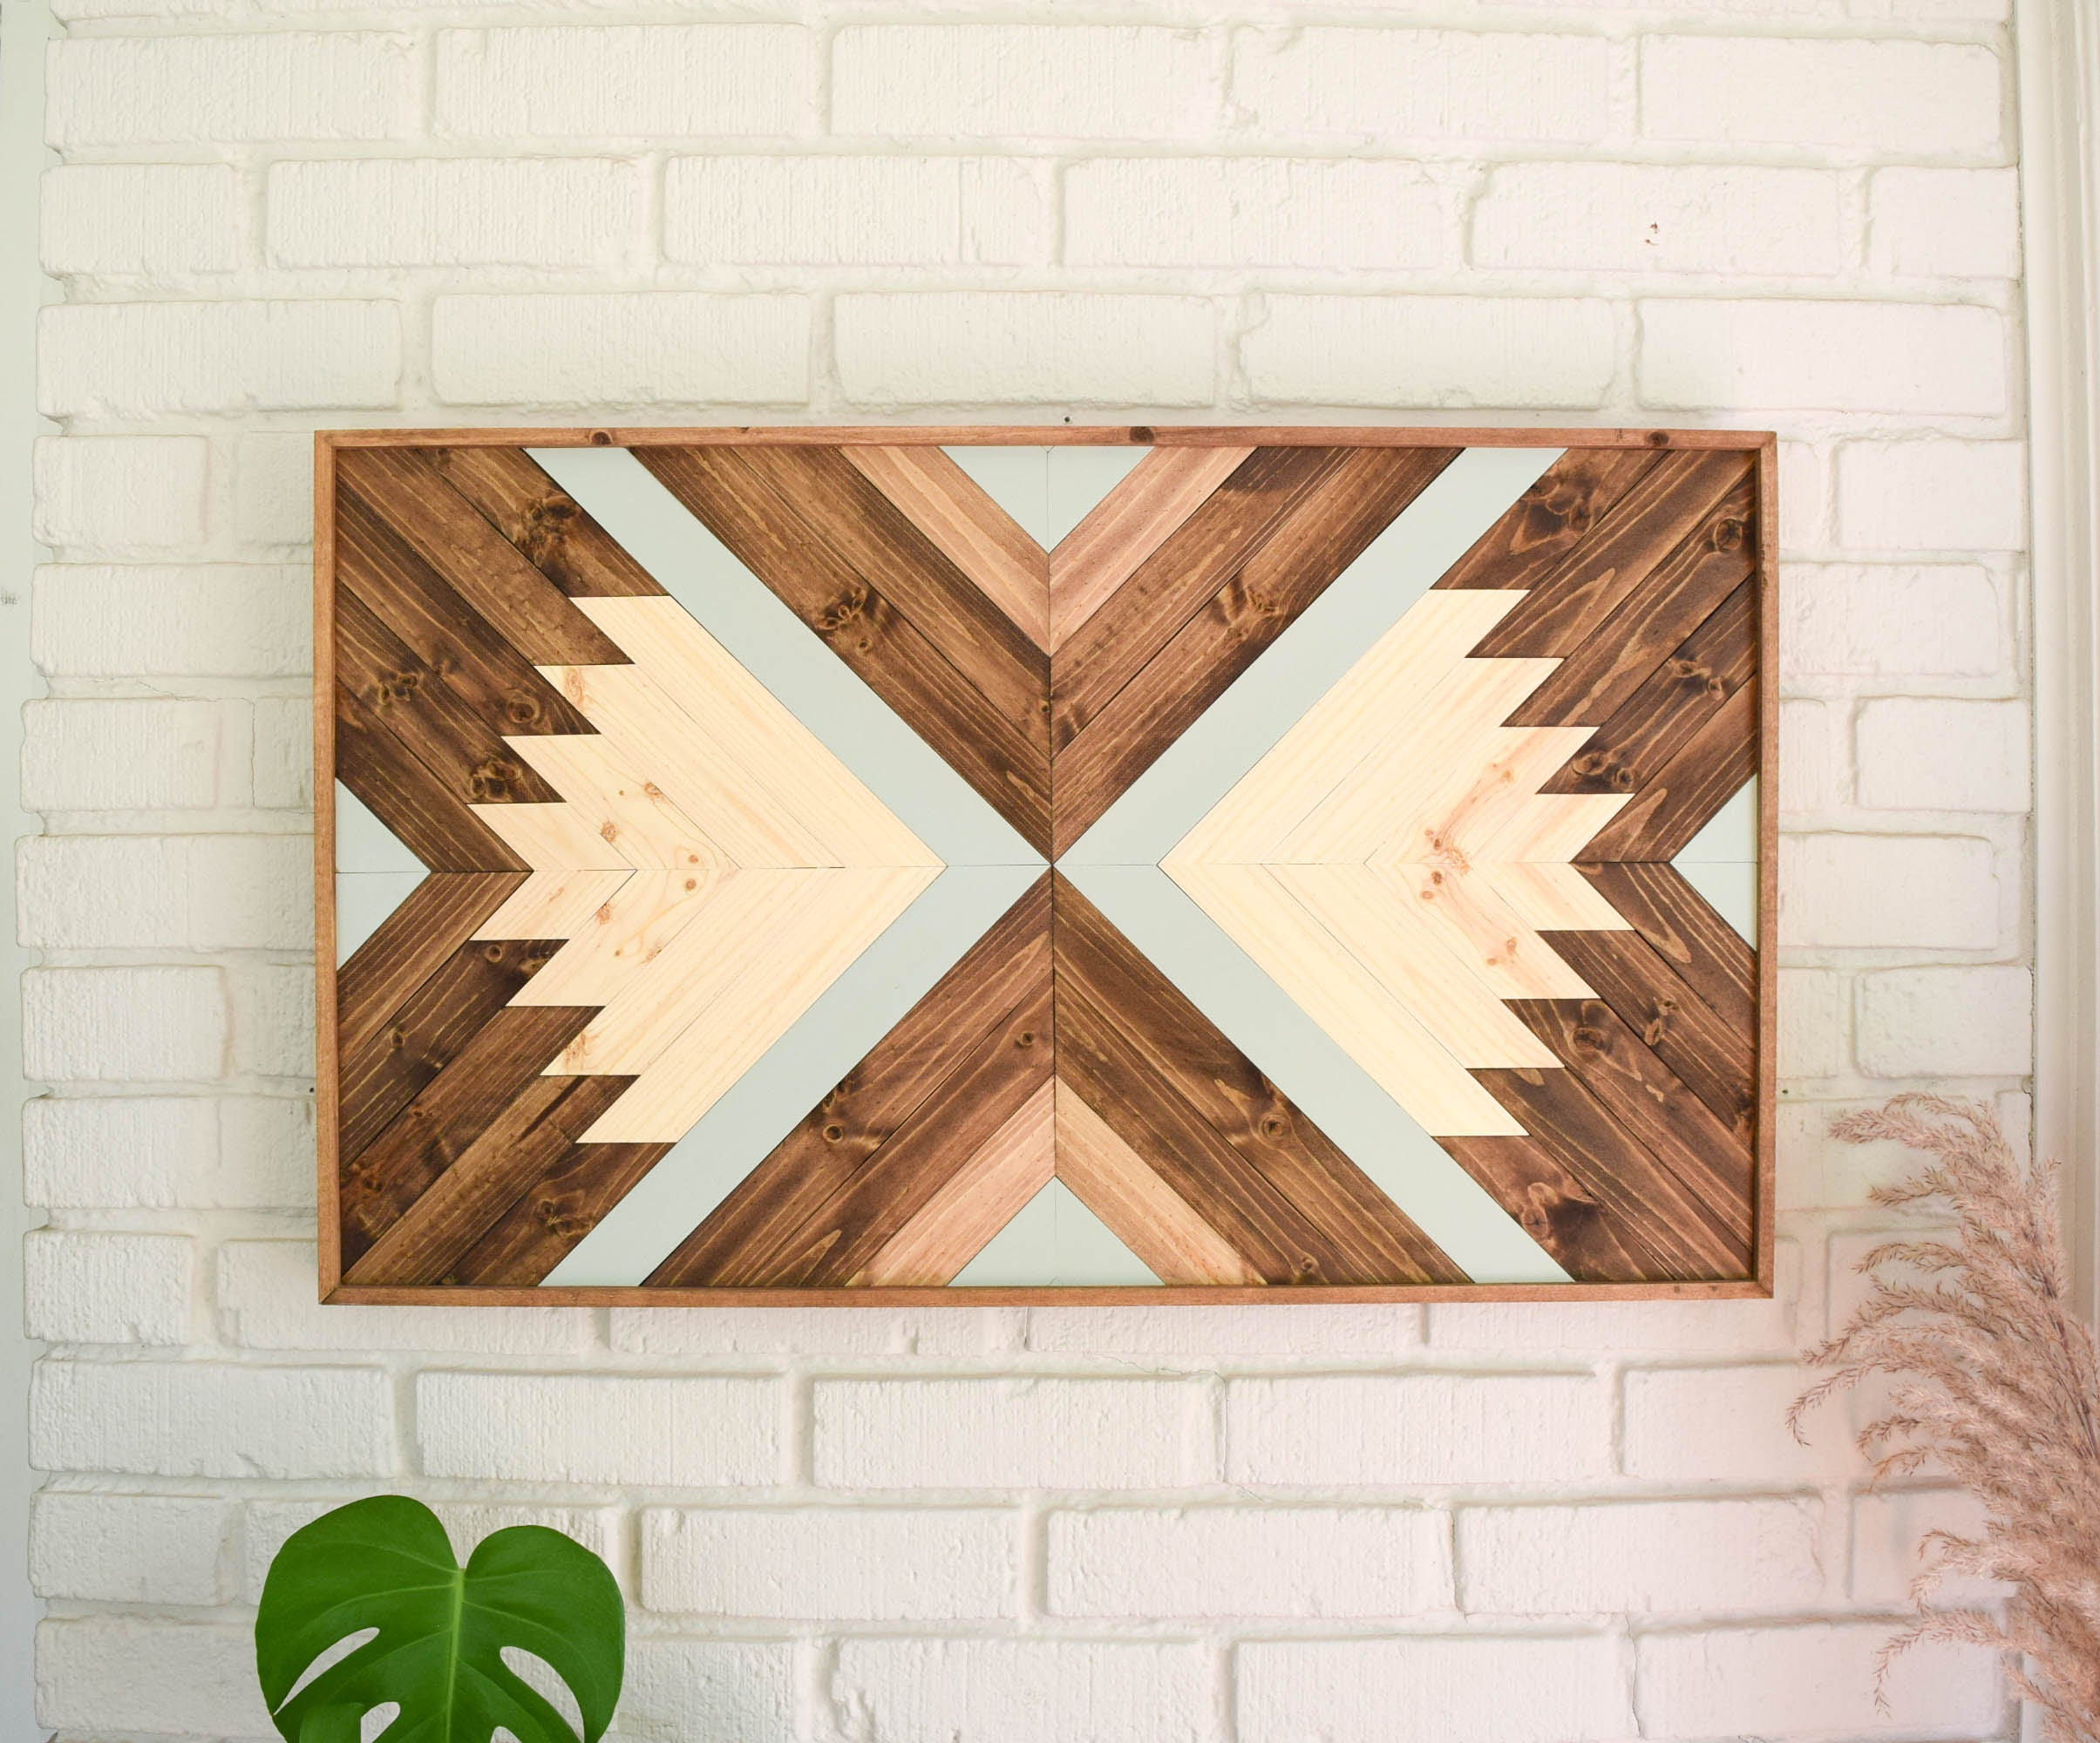 Wood wall art wooden wall art geometric wood art wooden zoom amipublicfo Choice Image